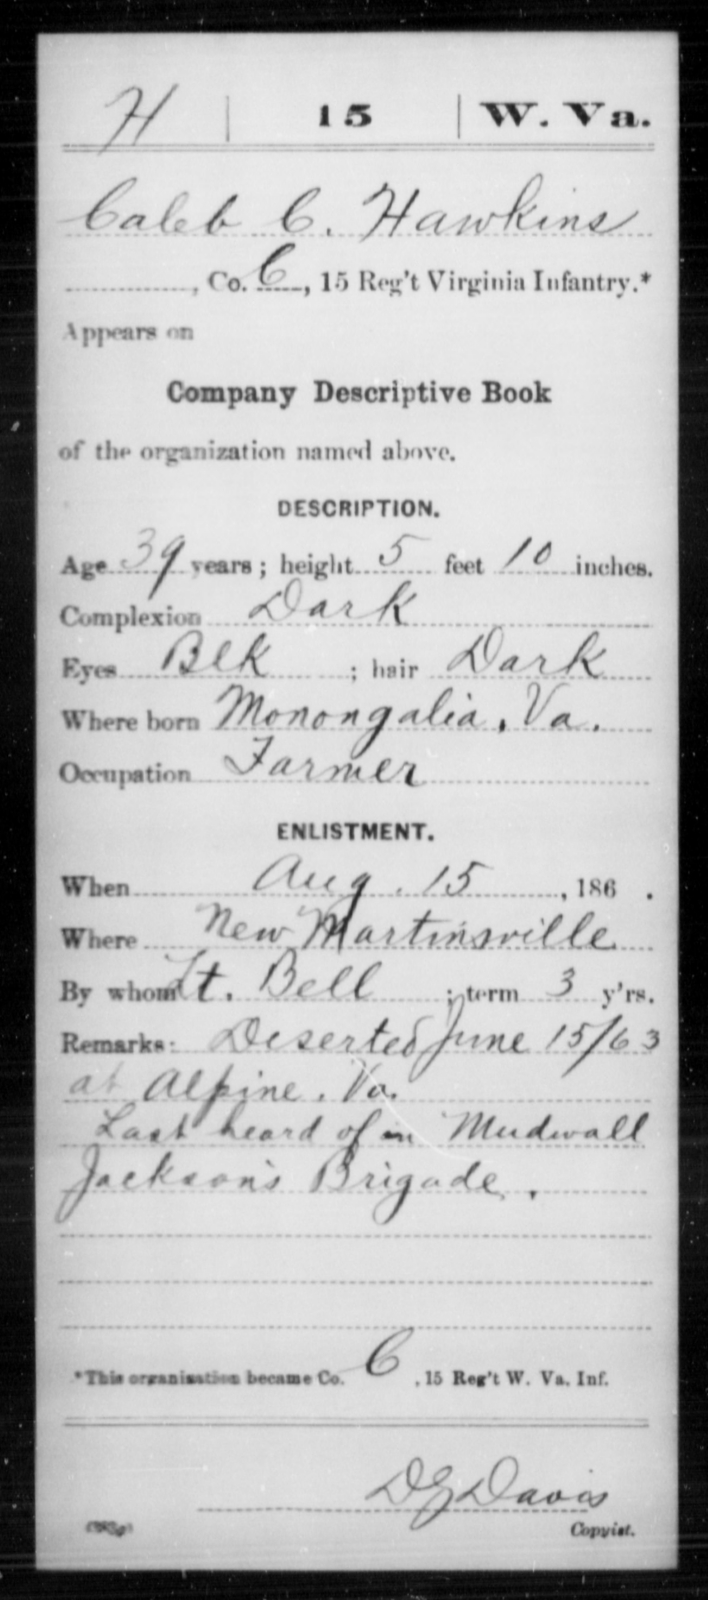 Hawkins, Caleb C - Age 39, Year: 1863 - Miscellaneous Card Abstracts of Records - West Virginia